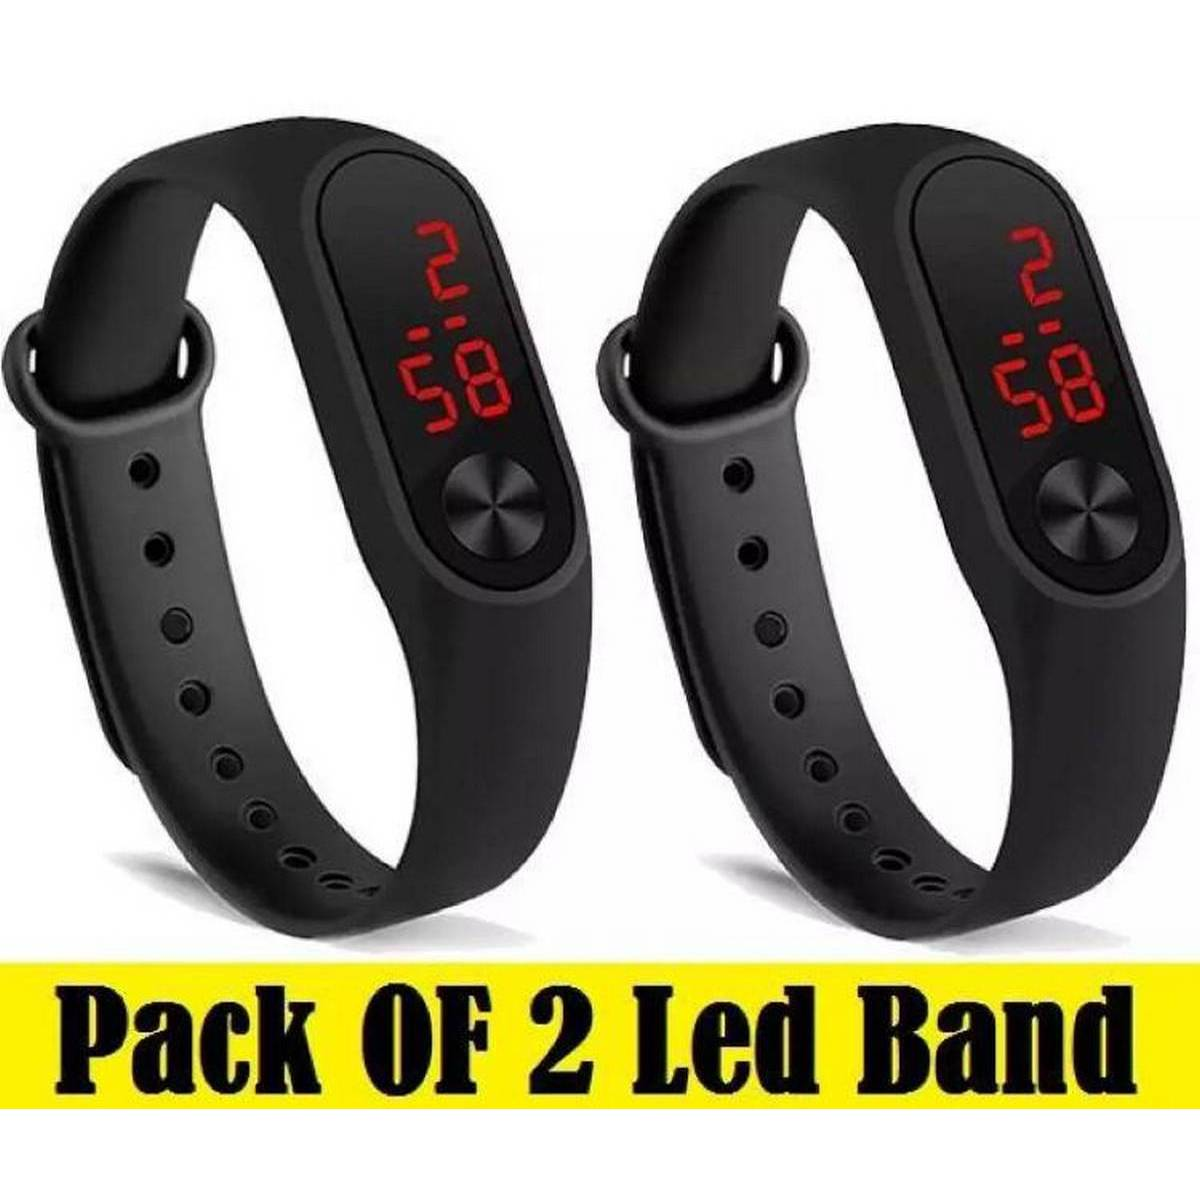 Pack of 2 M3 Touch Led Bracelet Digital Watch Band Watch for boys Watch for girls Watch for boys stylish Watch for boys digital Watch for boys branded Watch for boys apple Watch for boys chain Watch for girls 2020 Watch for boys touch Watch for boys brand